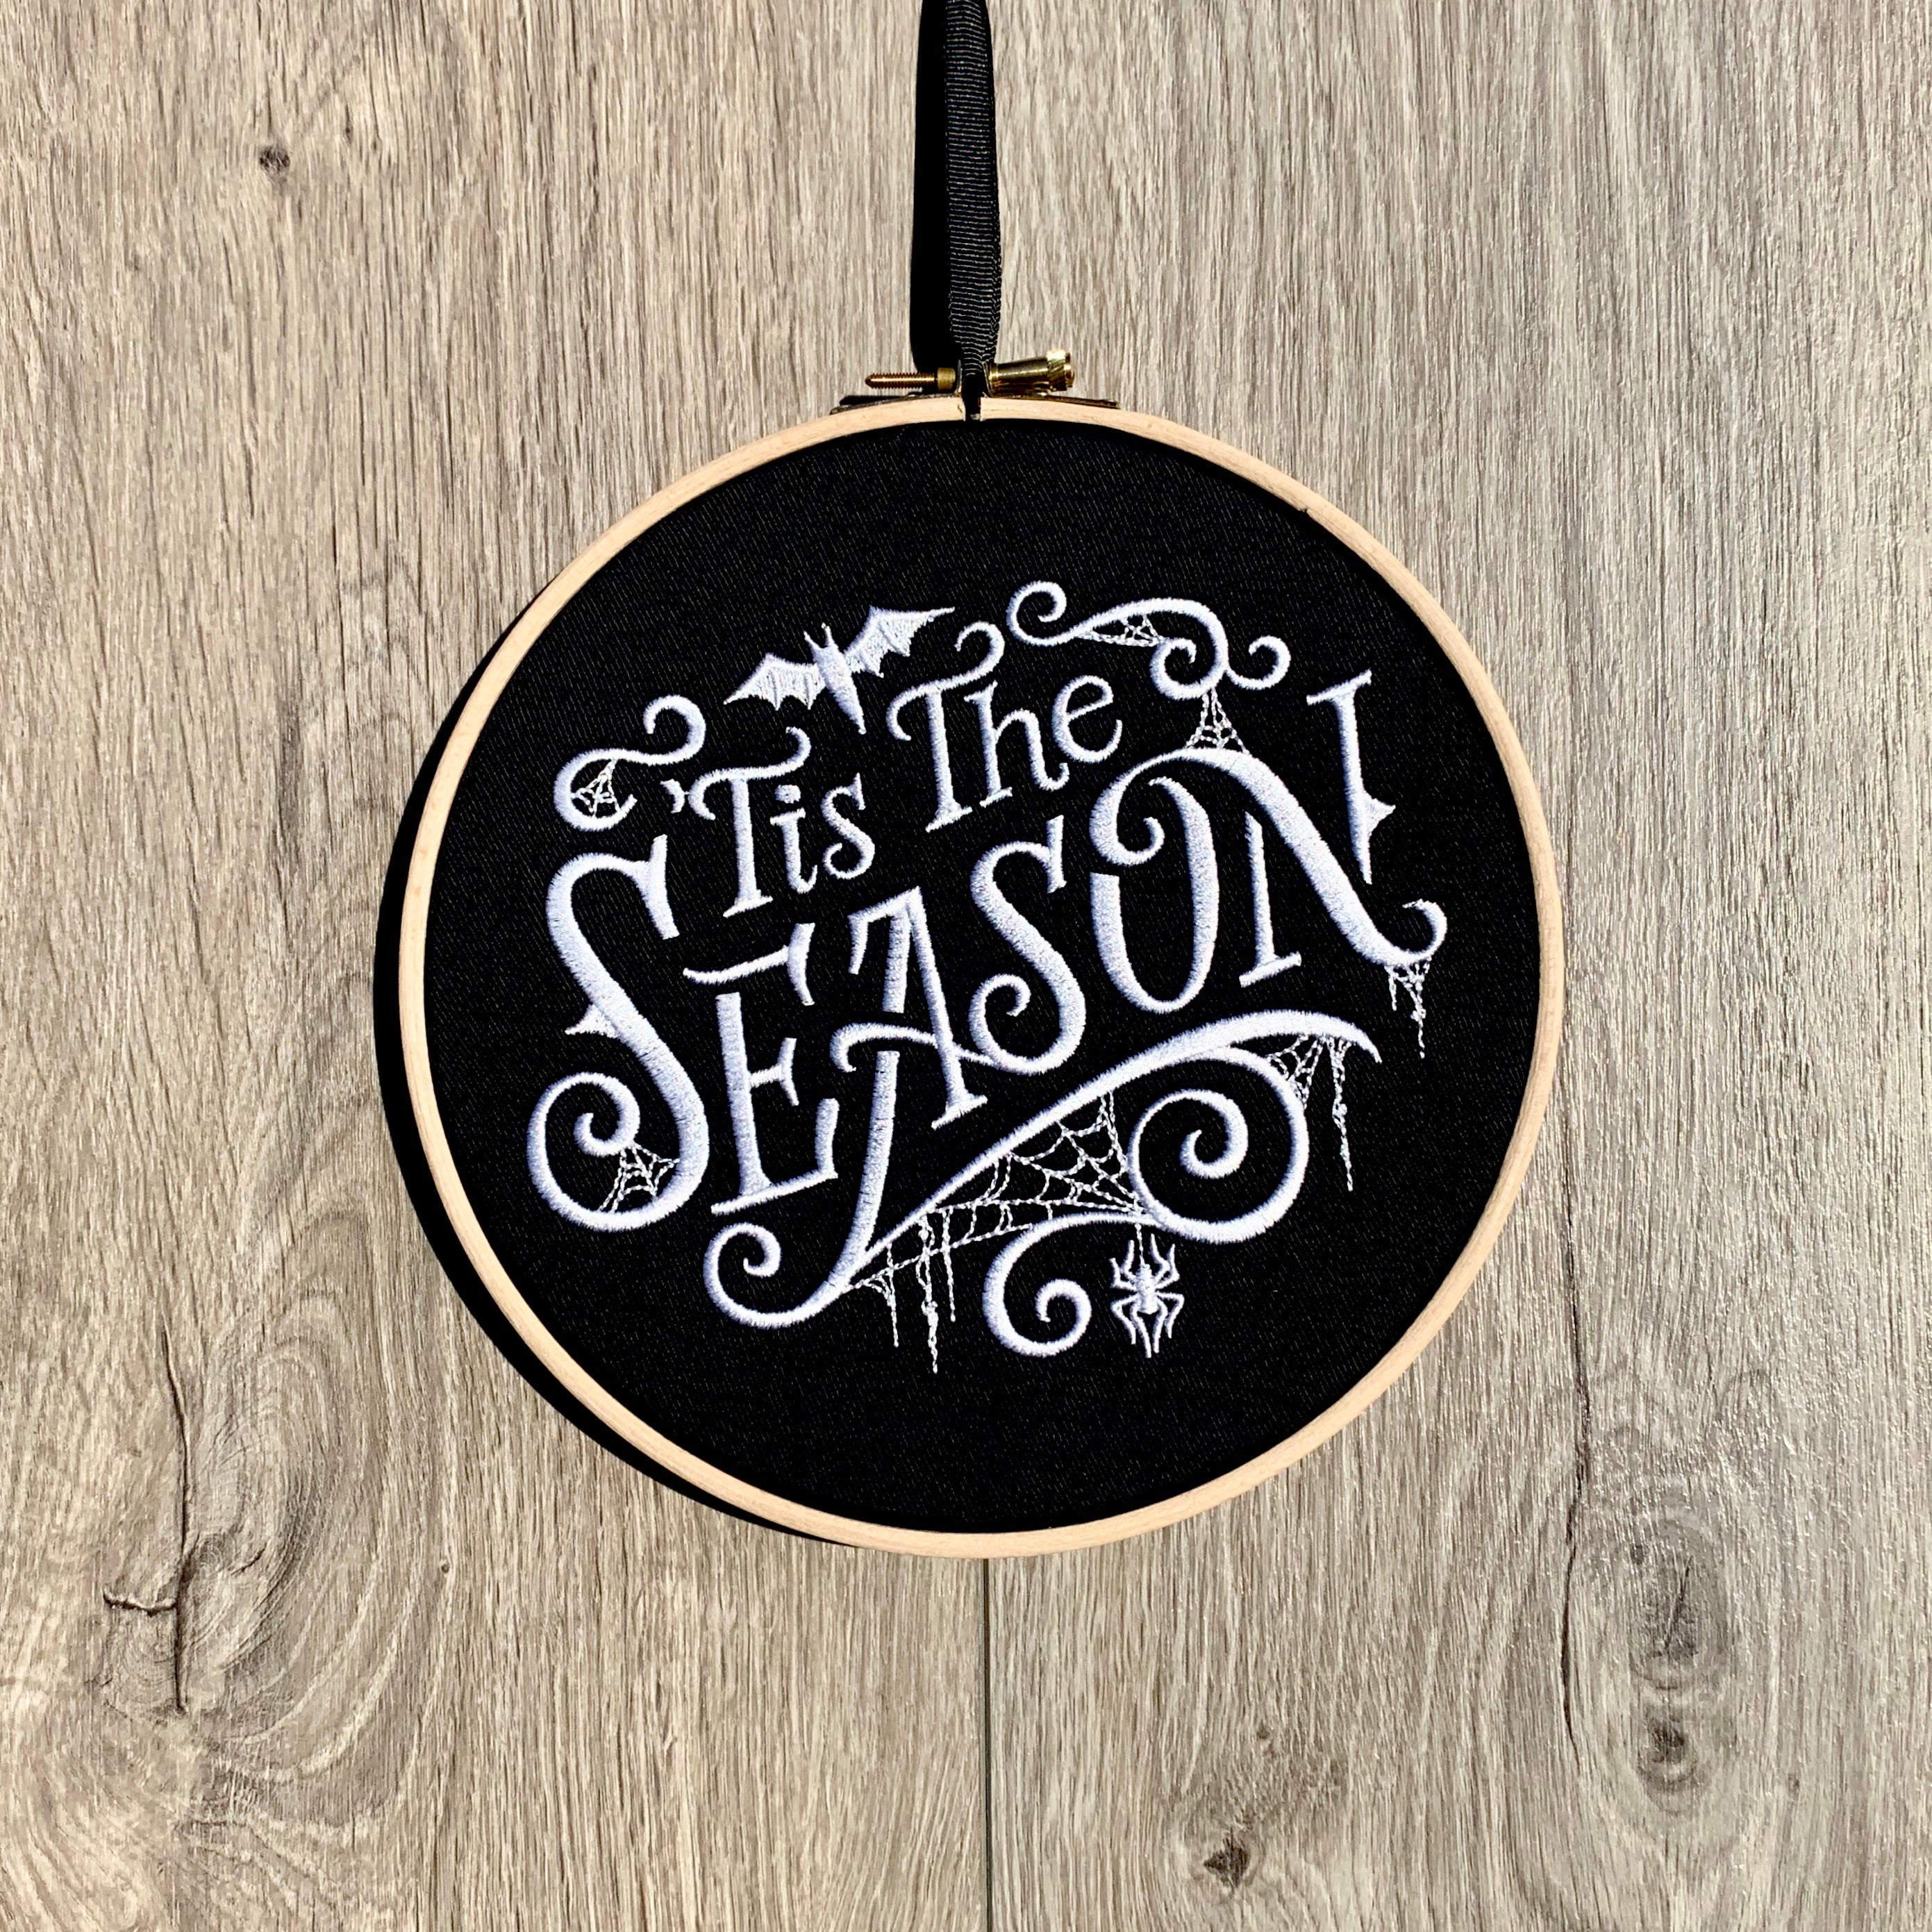 Halloween Tis the season, Embroidery hoop art